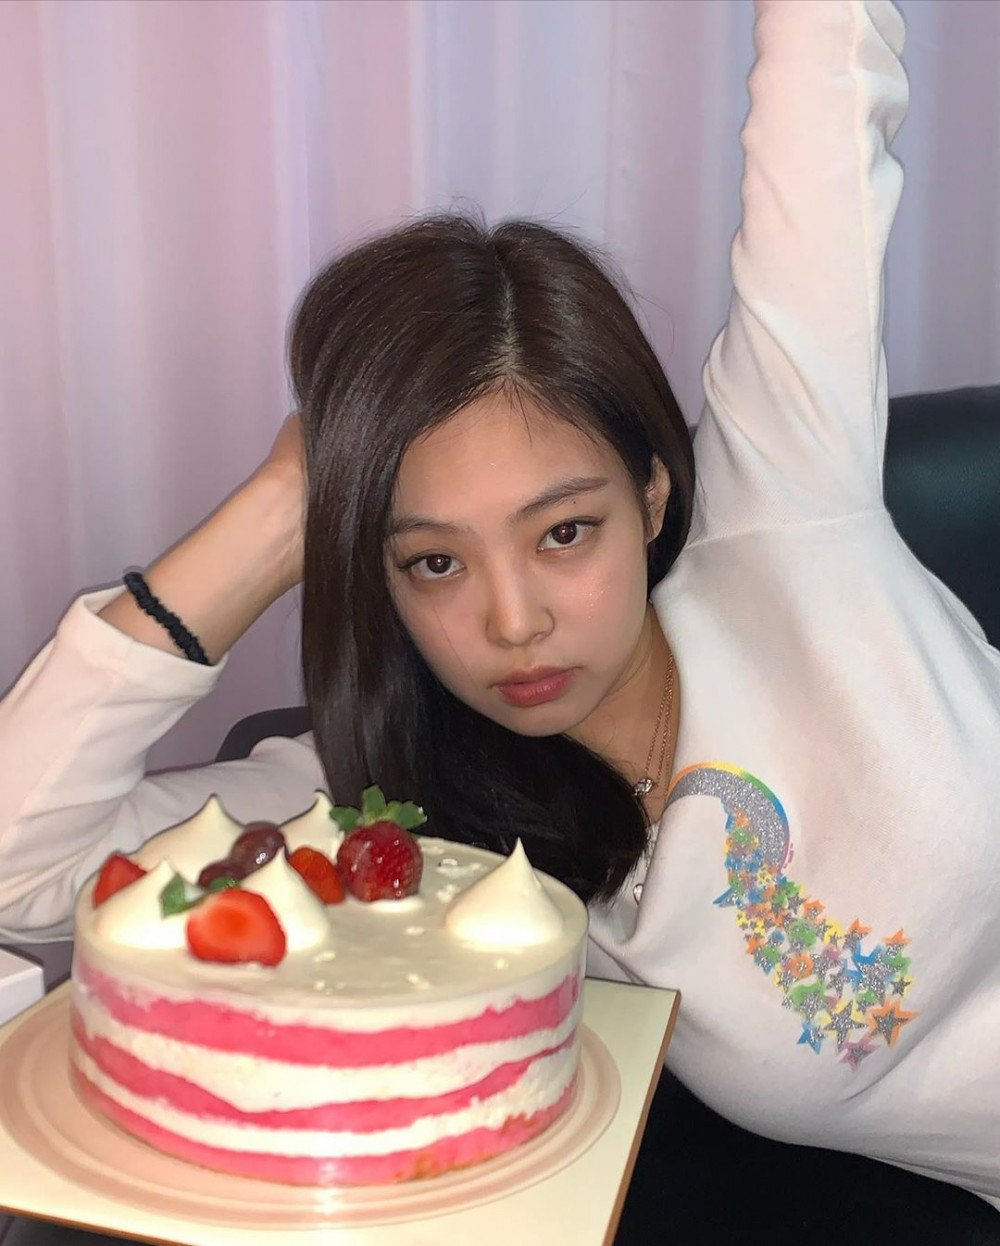 Admirable Blackpinks Jennie Celebrates Her Birthday Cake Angeljennieday Personalised Birthday Cards Paralily Jamesorg